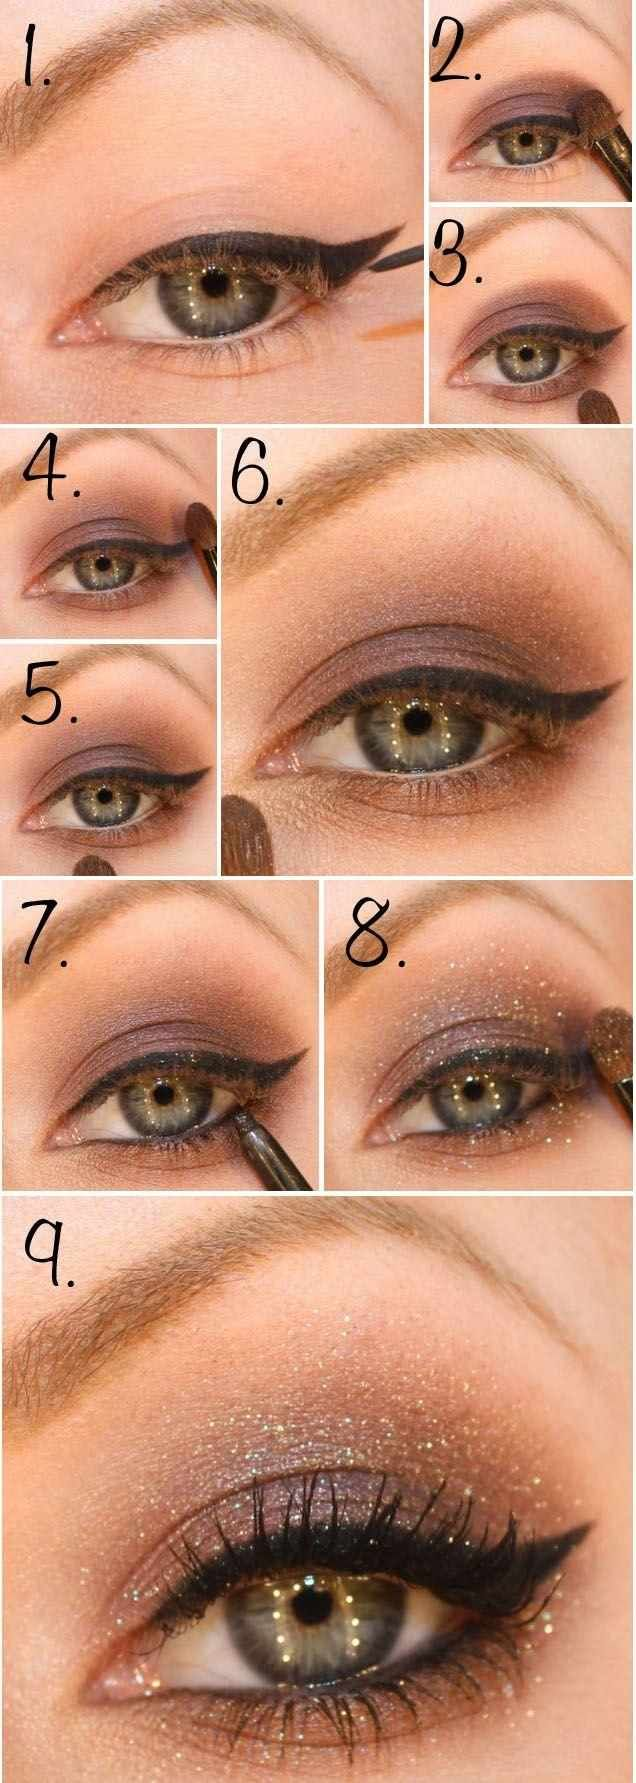 tuto-maquillage-yeux-eye-liner-fard-paupières-marron-particules